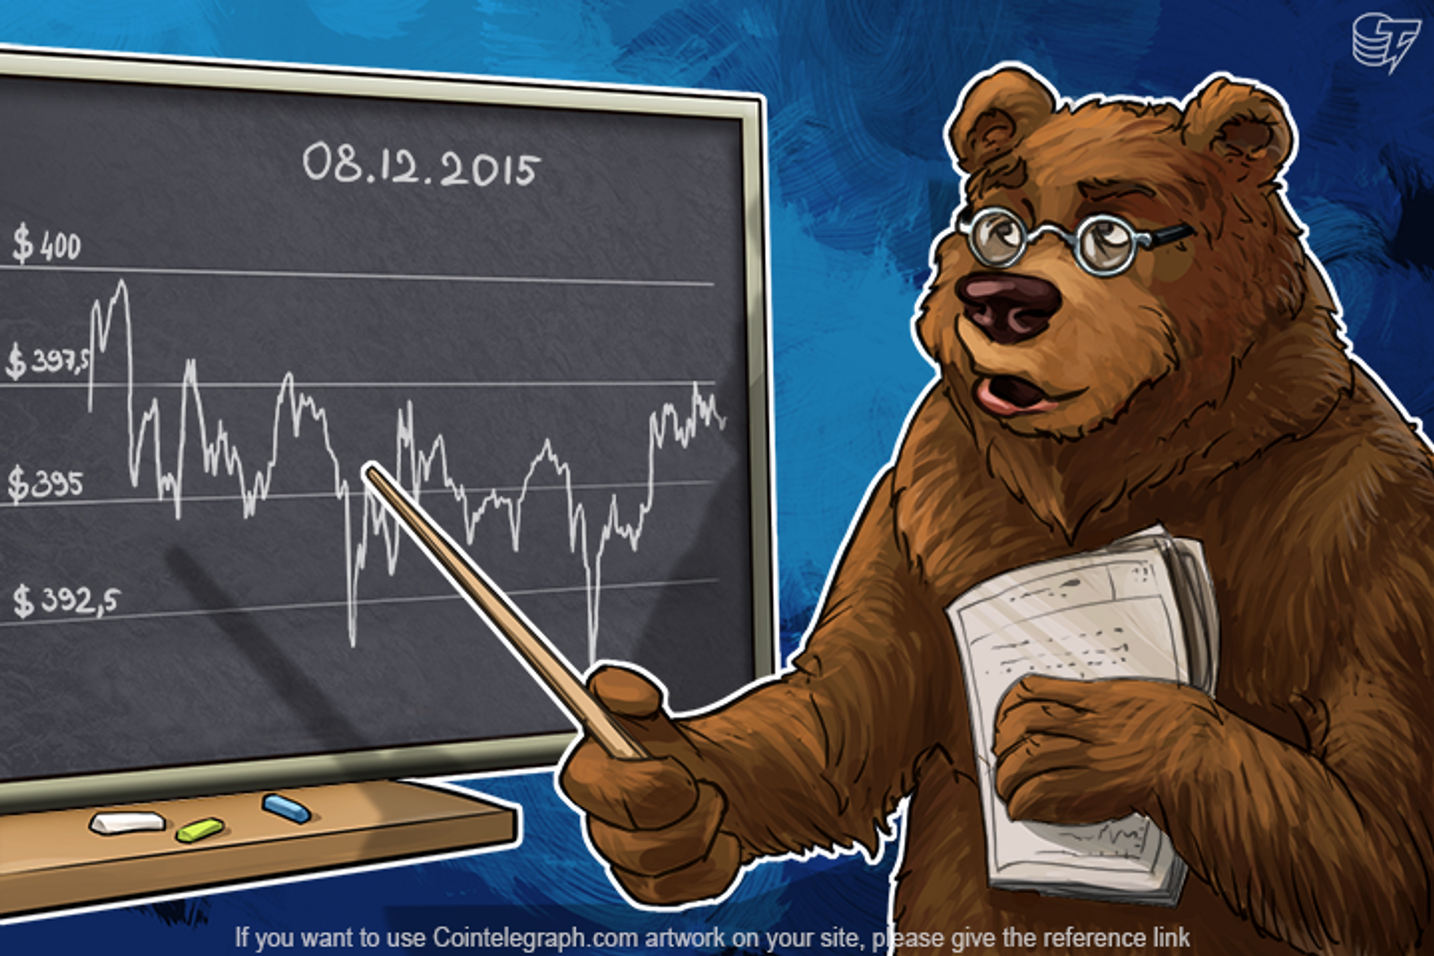 Daily Bitcoin Price Analysis: Growth or Sideways Trend Again?